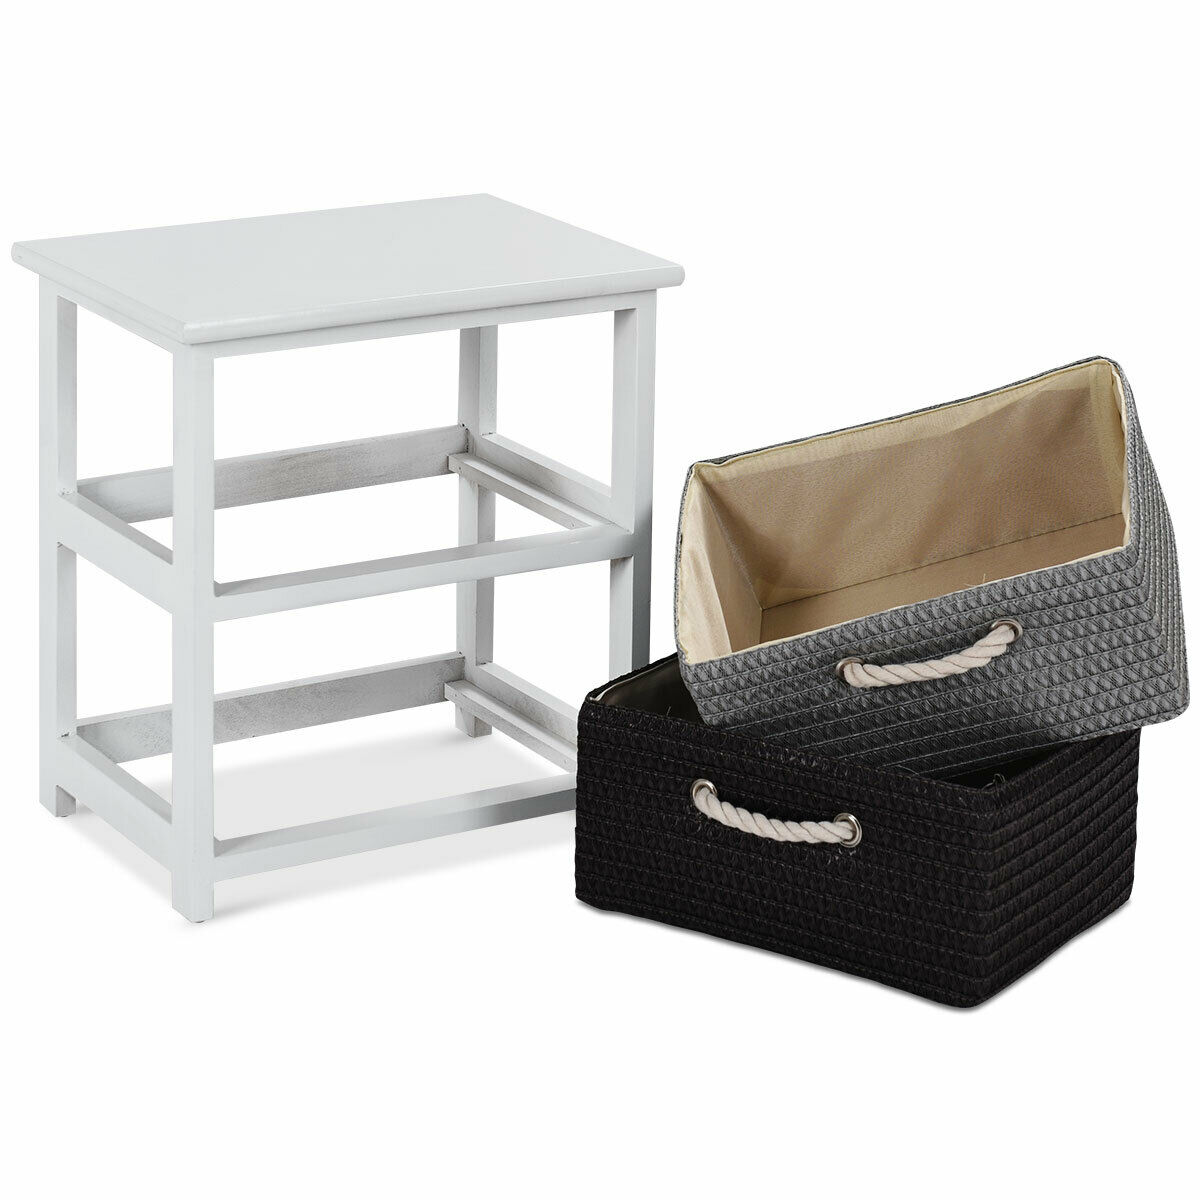 Gymax 2PC Wooden Nightstands 2 Weaving Baskets Bedside Table Storage Organizer Side Table - image 5 de 10